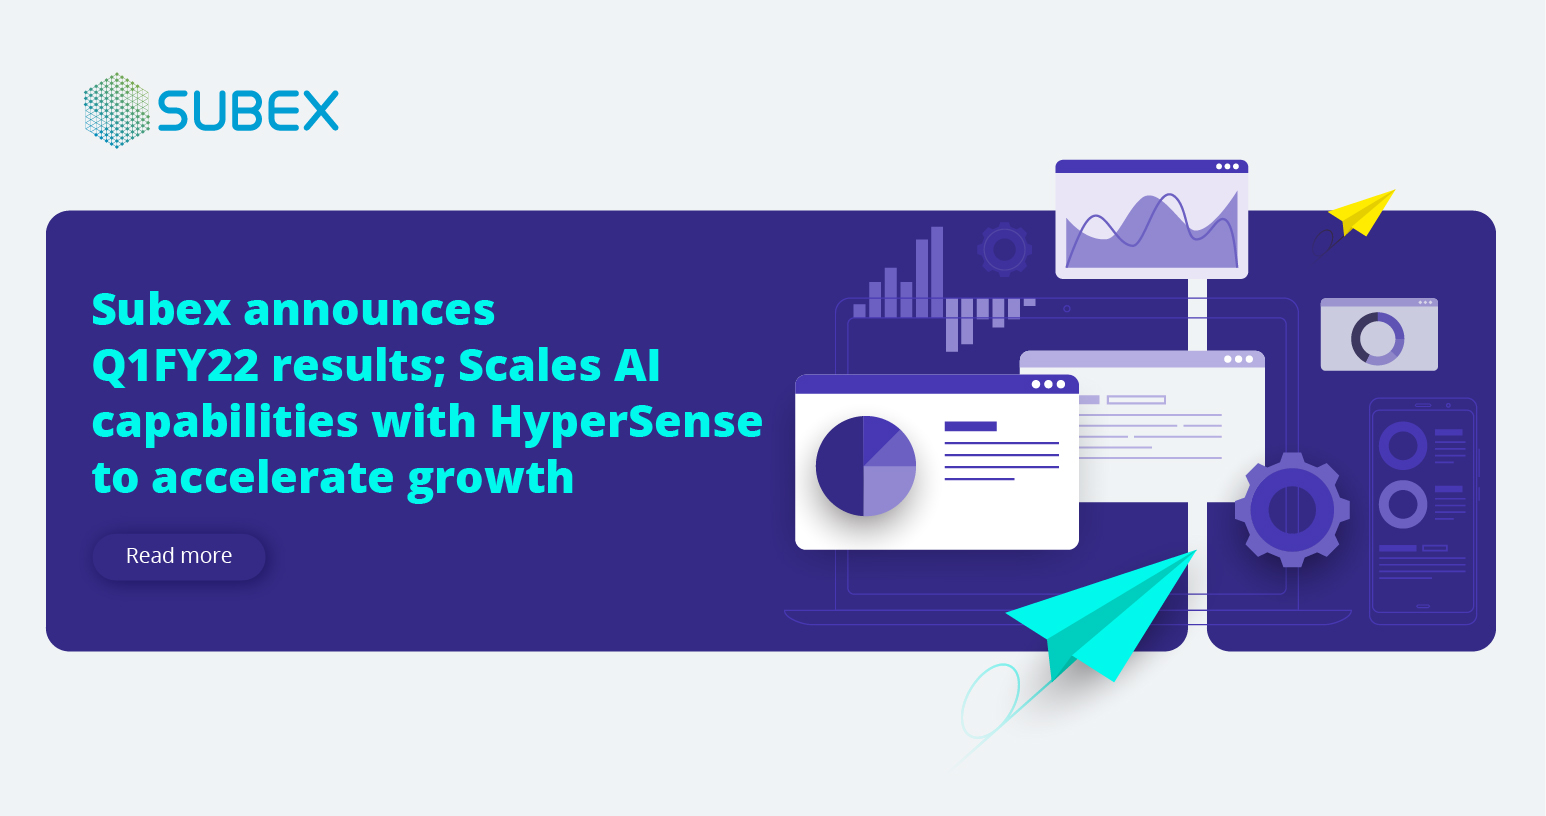 AI capabilities with HyperSense